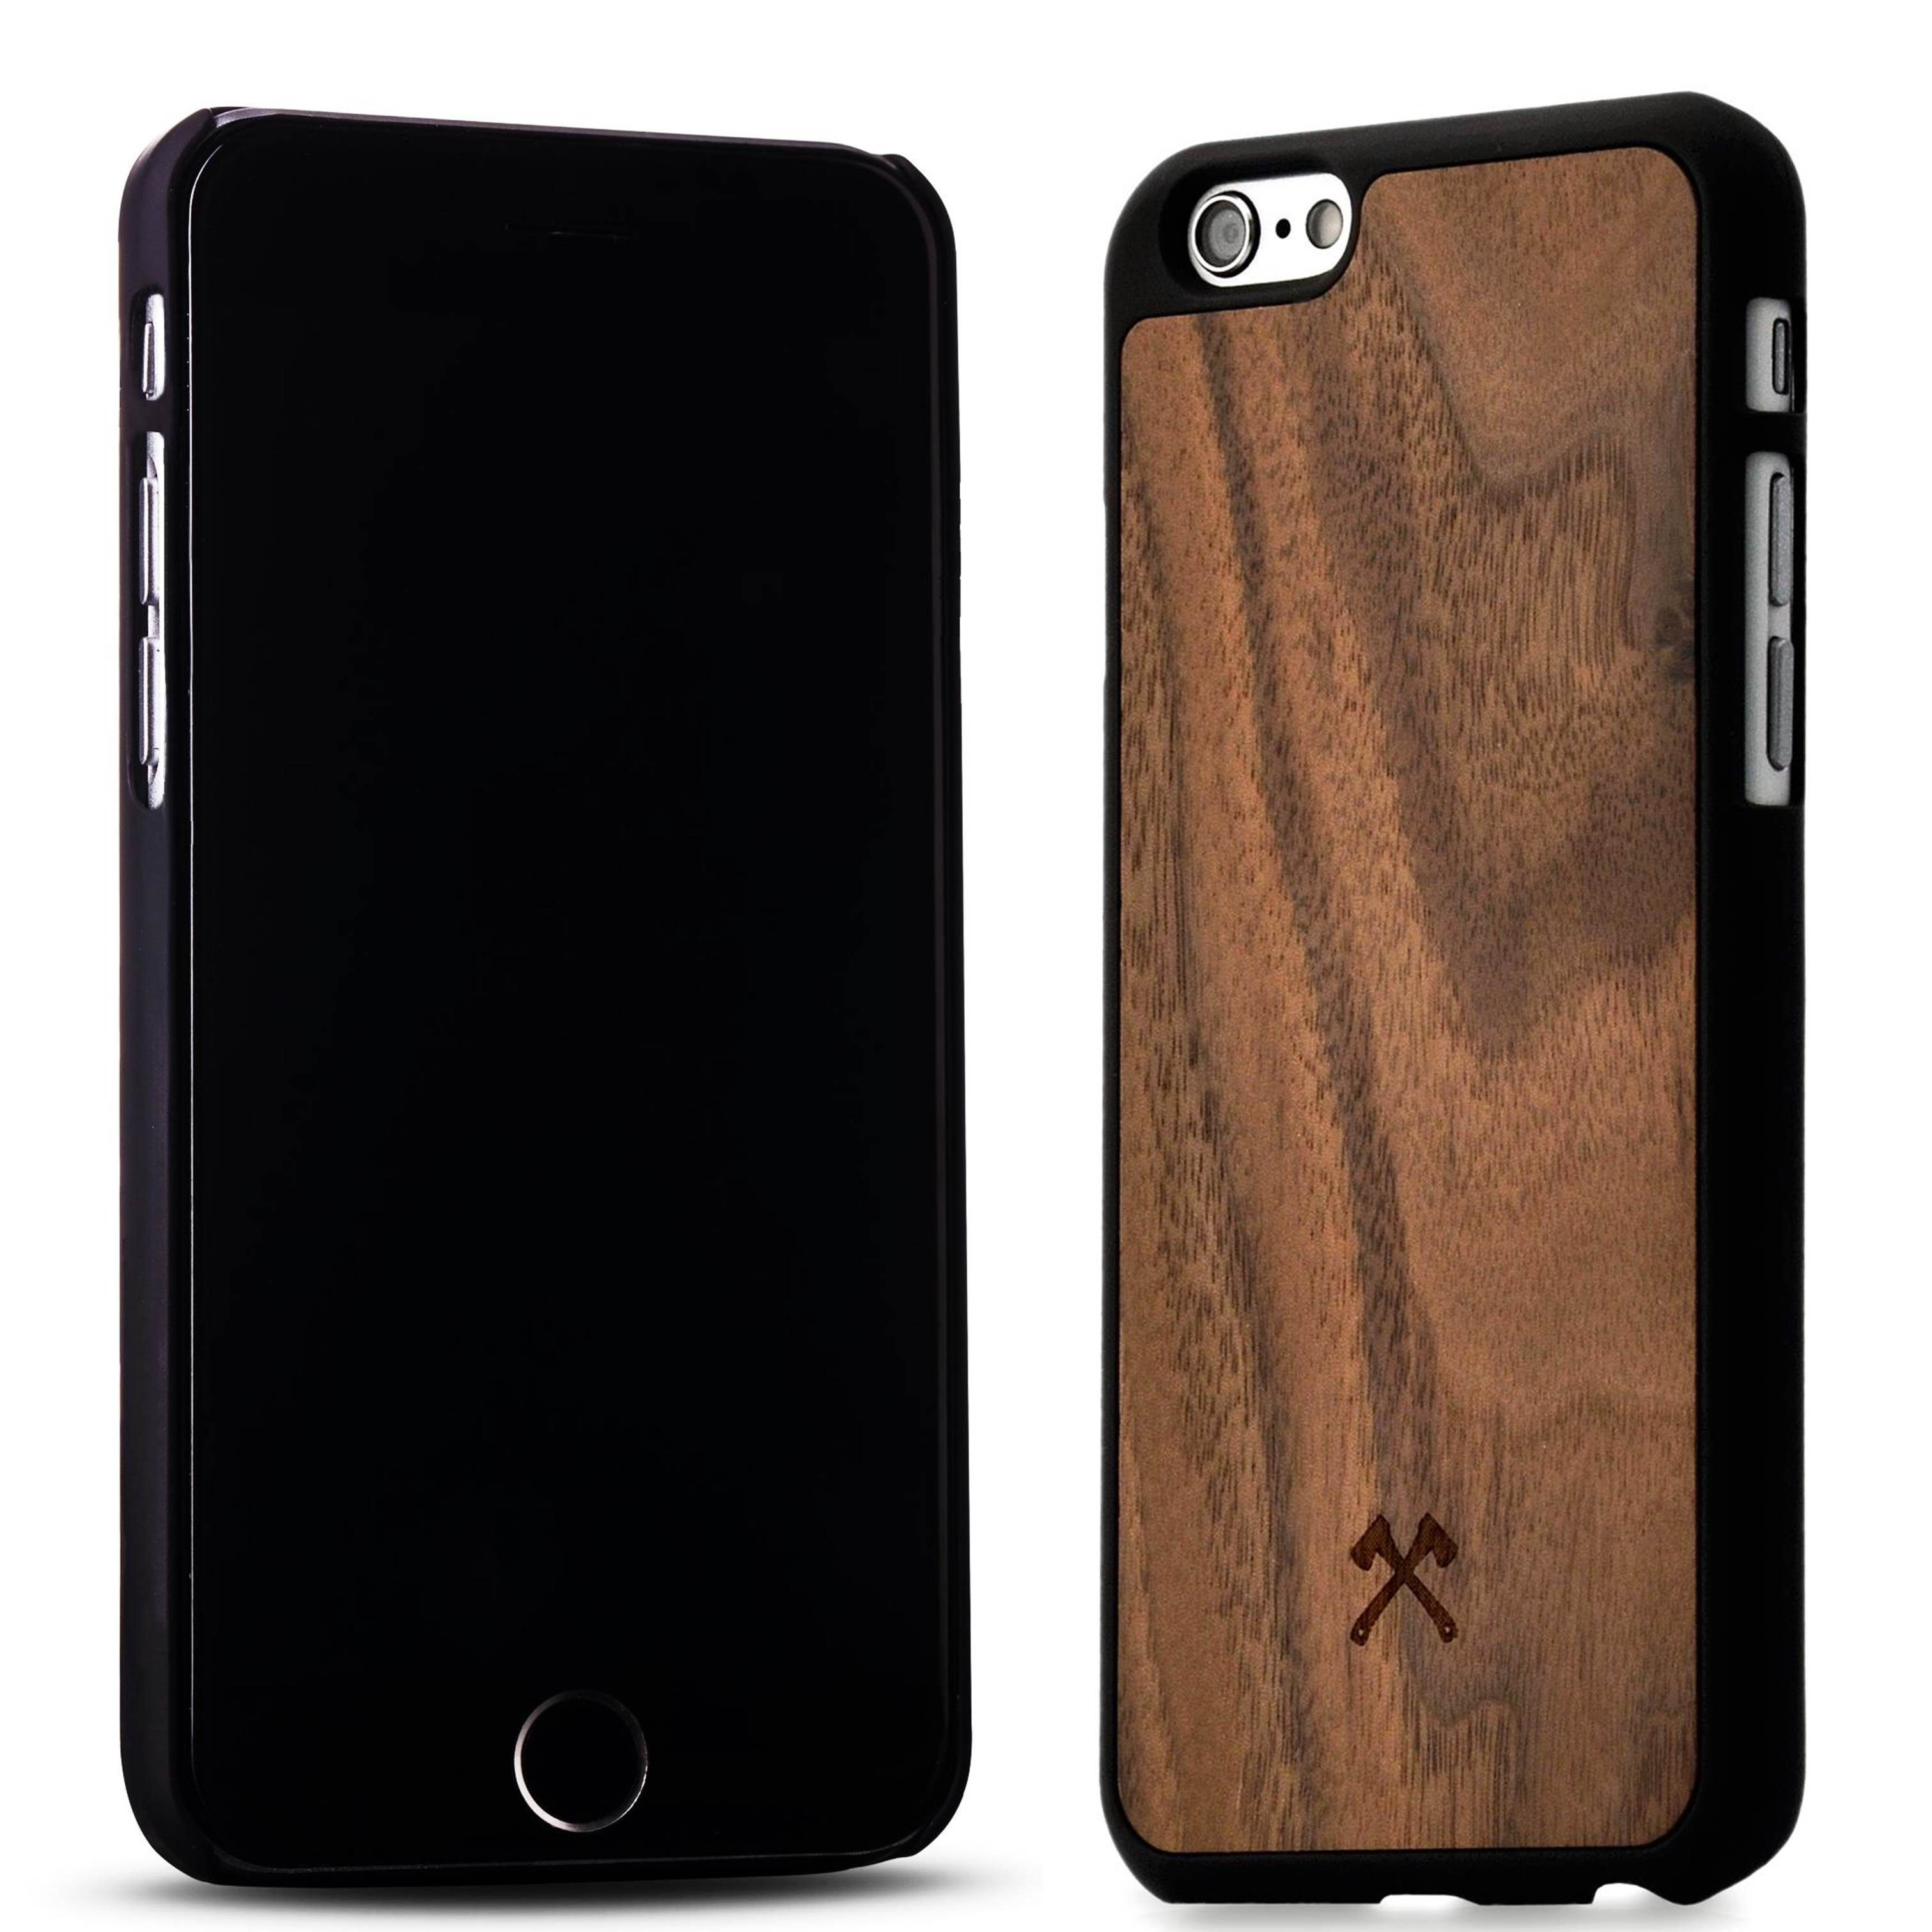 Woodcessories EcoCase - iPhone 6 / 6s Echtholz Casual Case